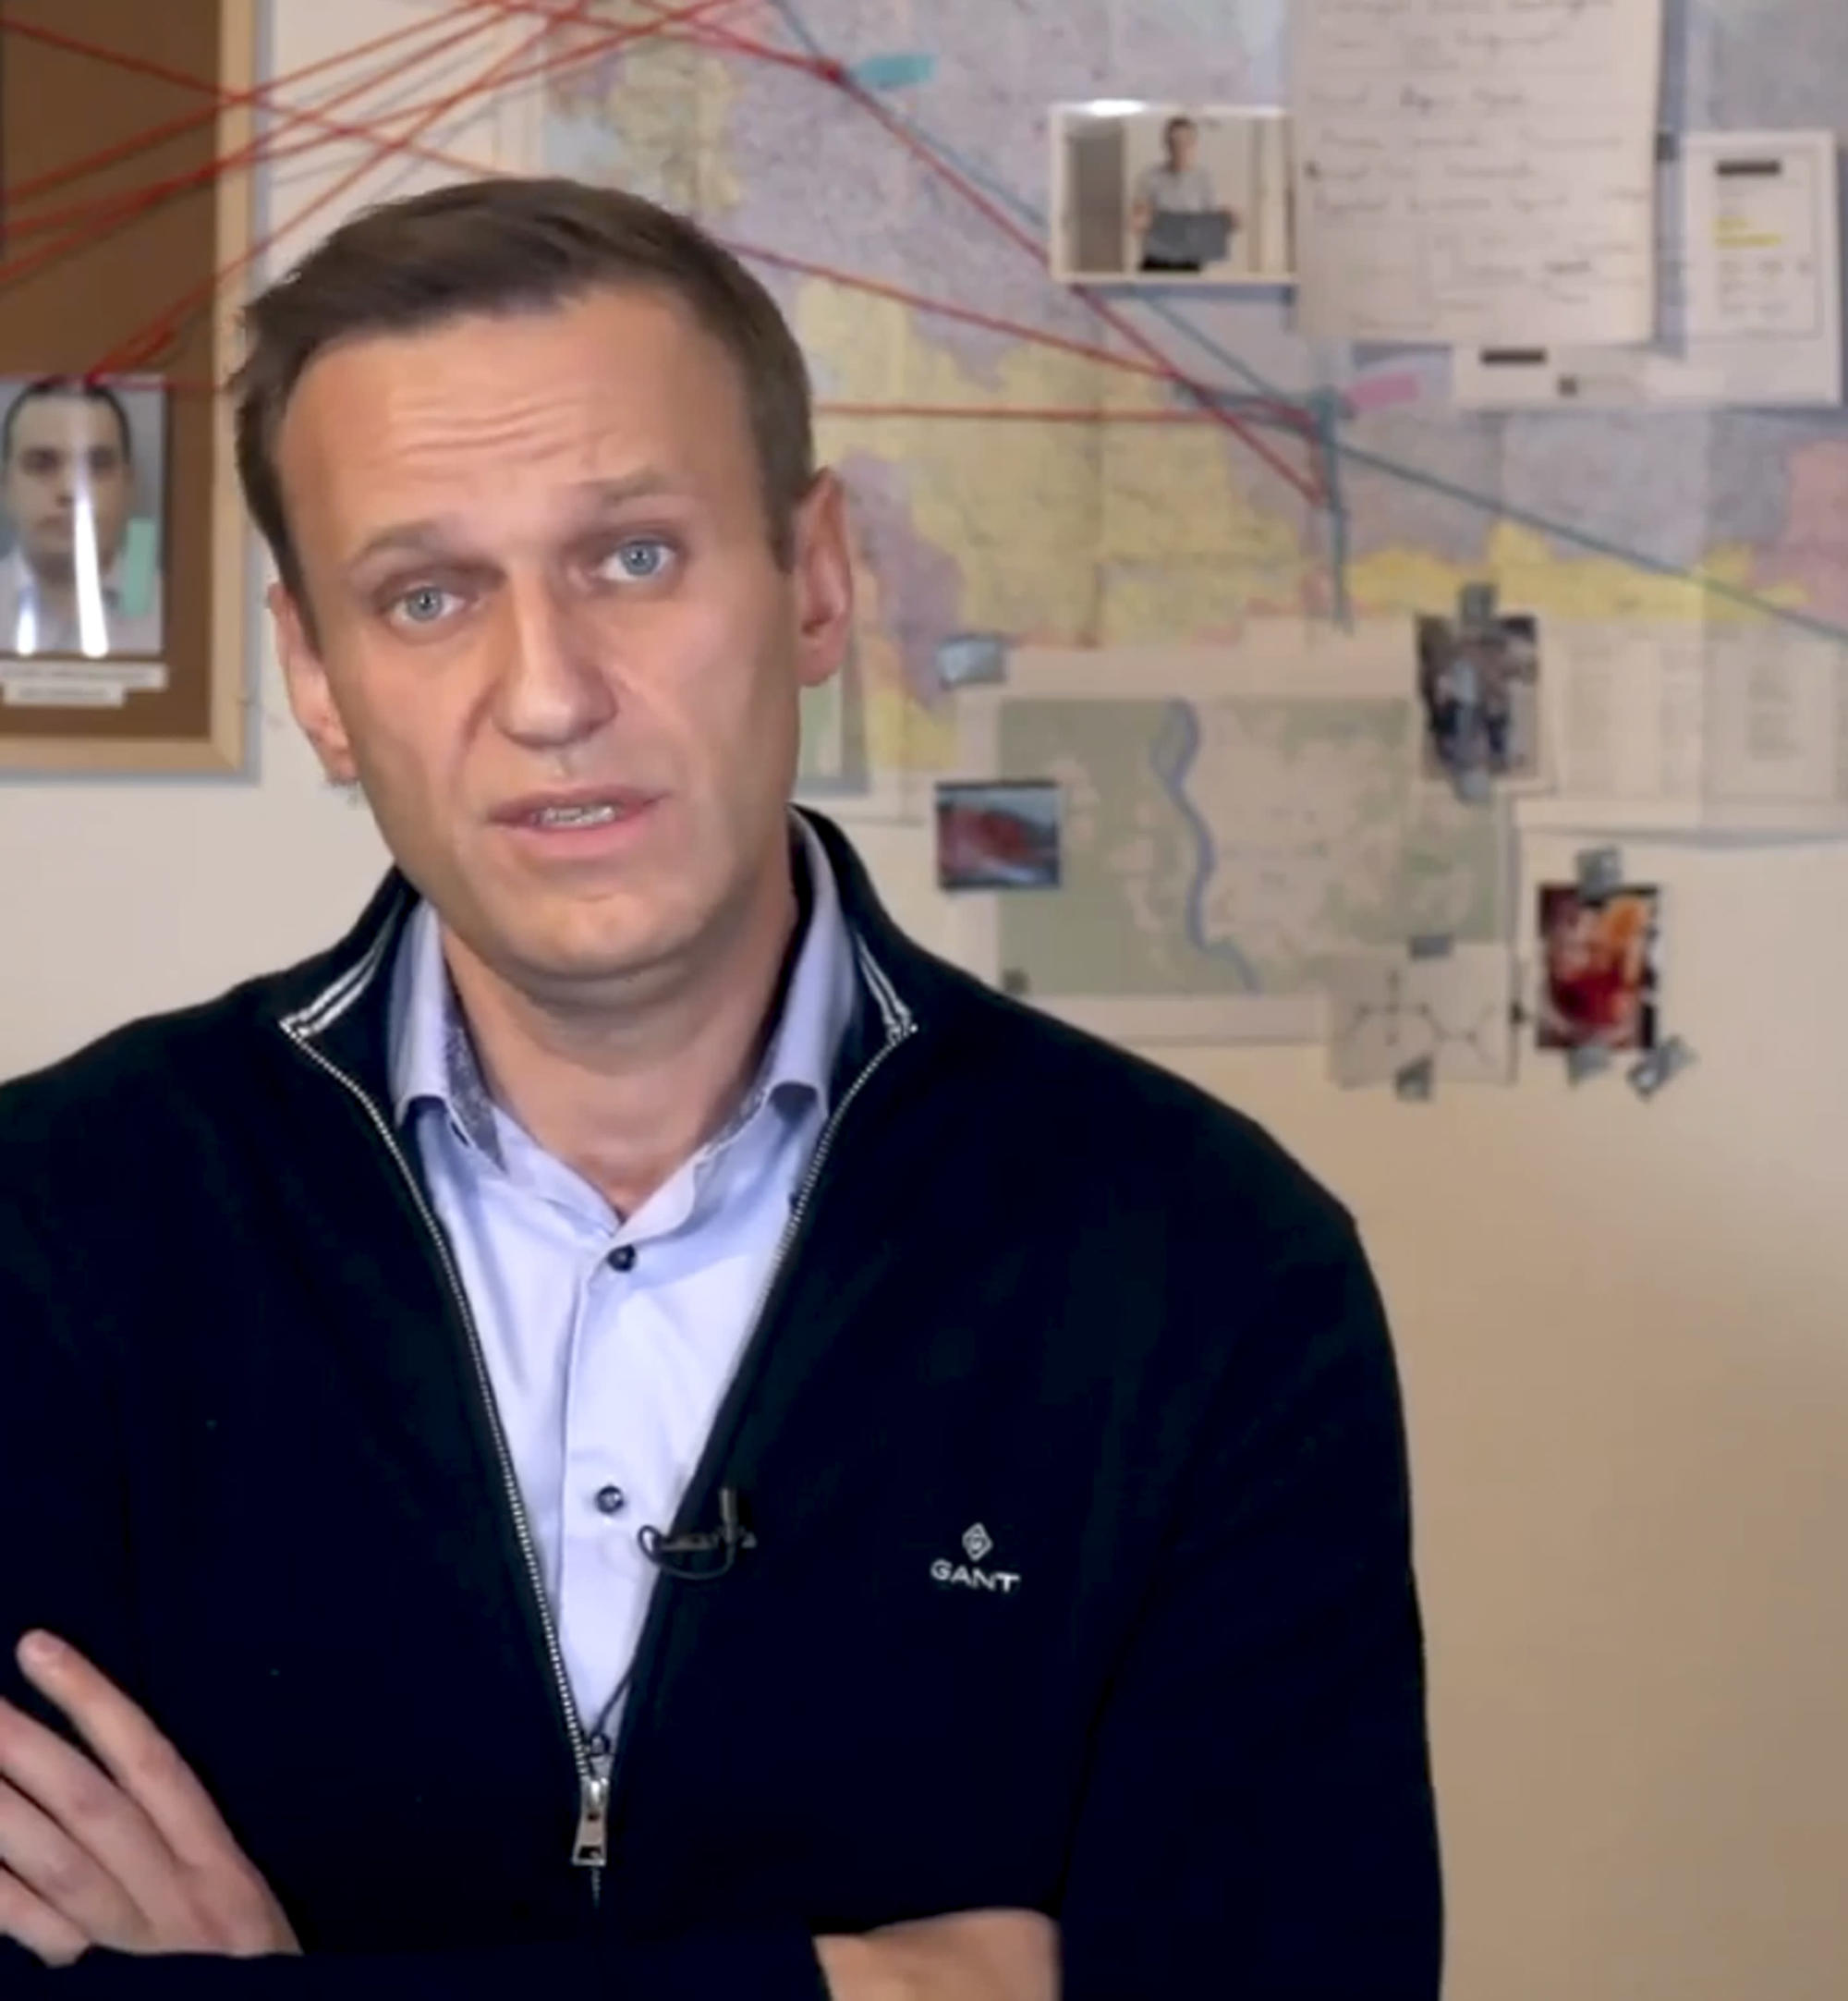 Doctors detail treatment with Navalny poison in medical journal